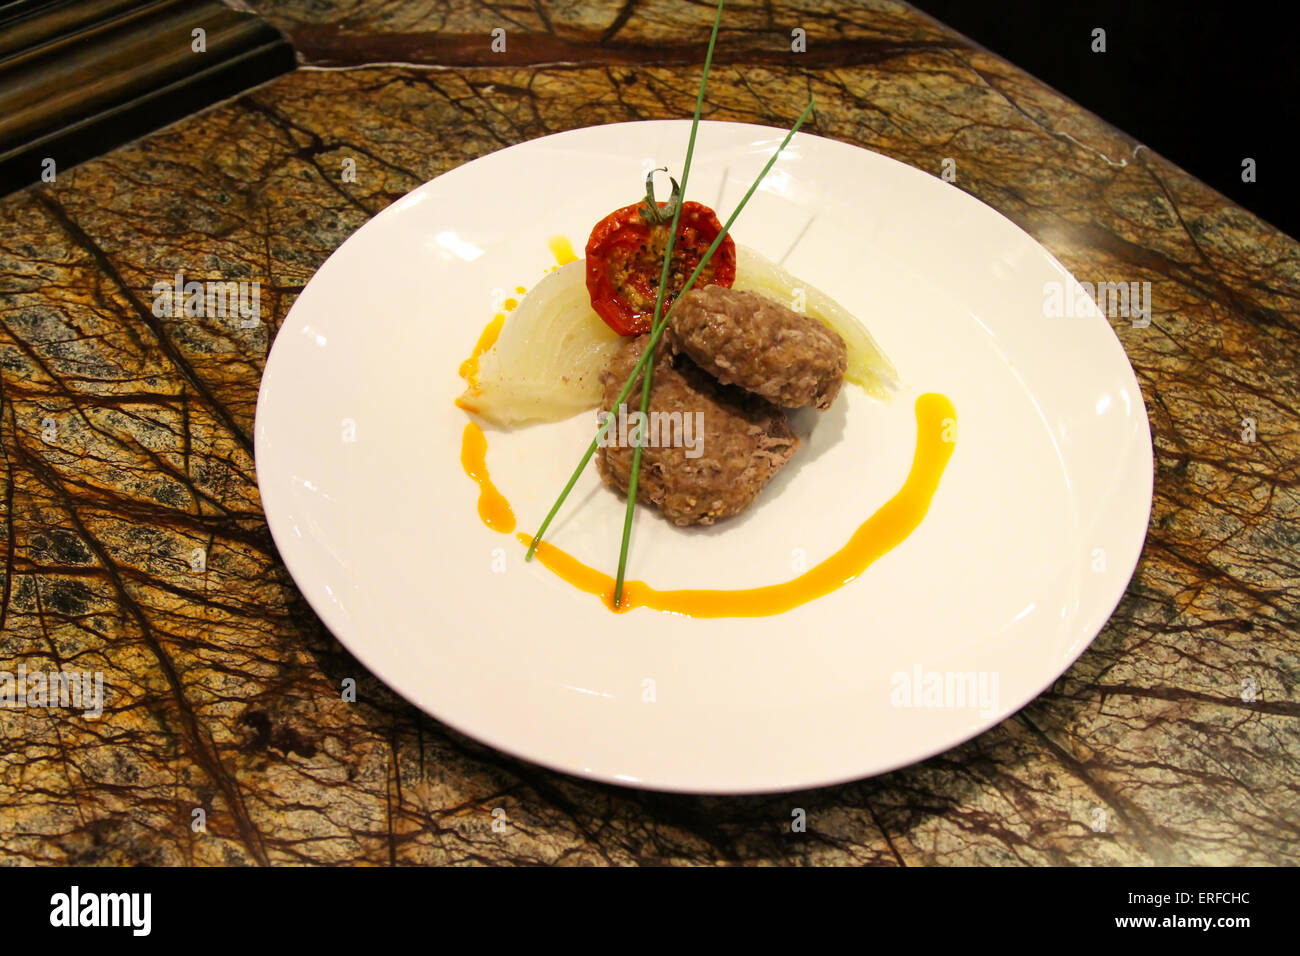 Delicious appetiser with some meat served in a white plate. - Stock Image